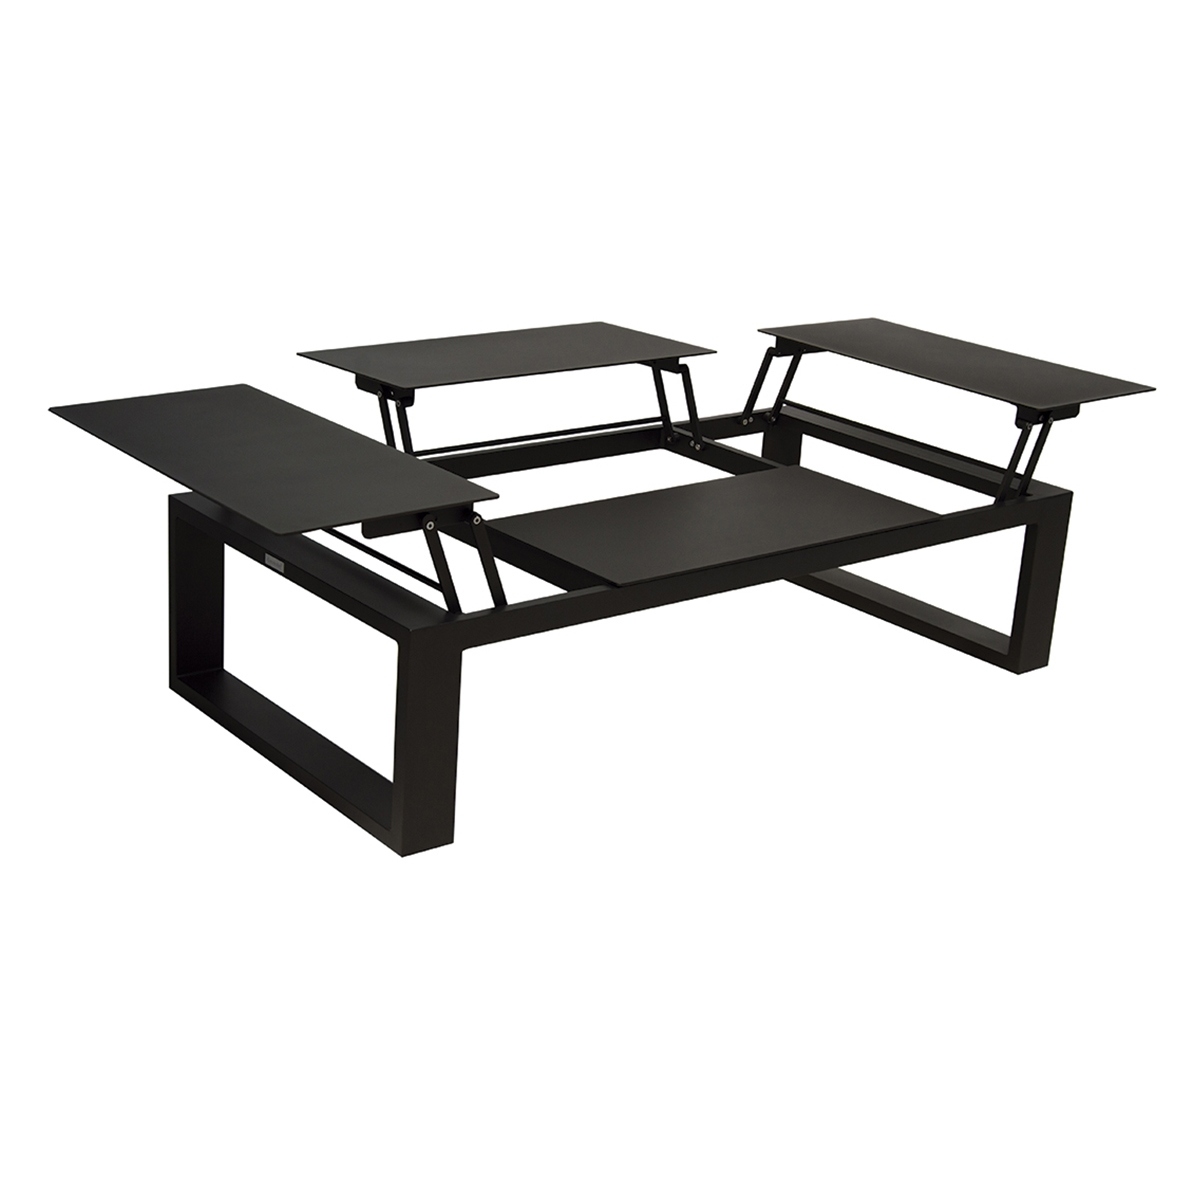 Table basse avec plateau relevable zendart outdoor - Table basse relevable avec rallonge ...